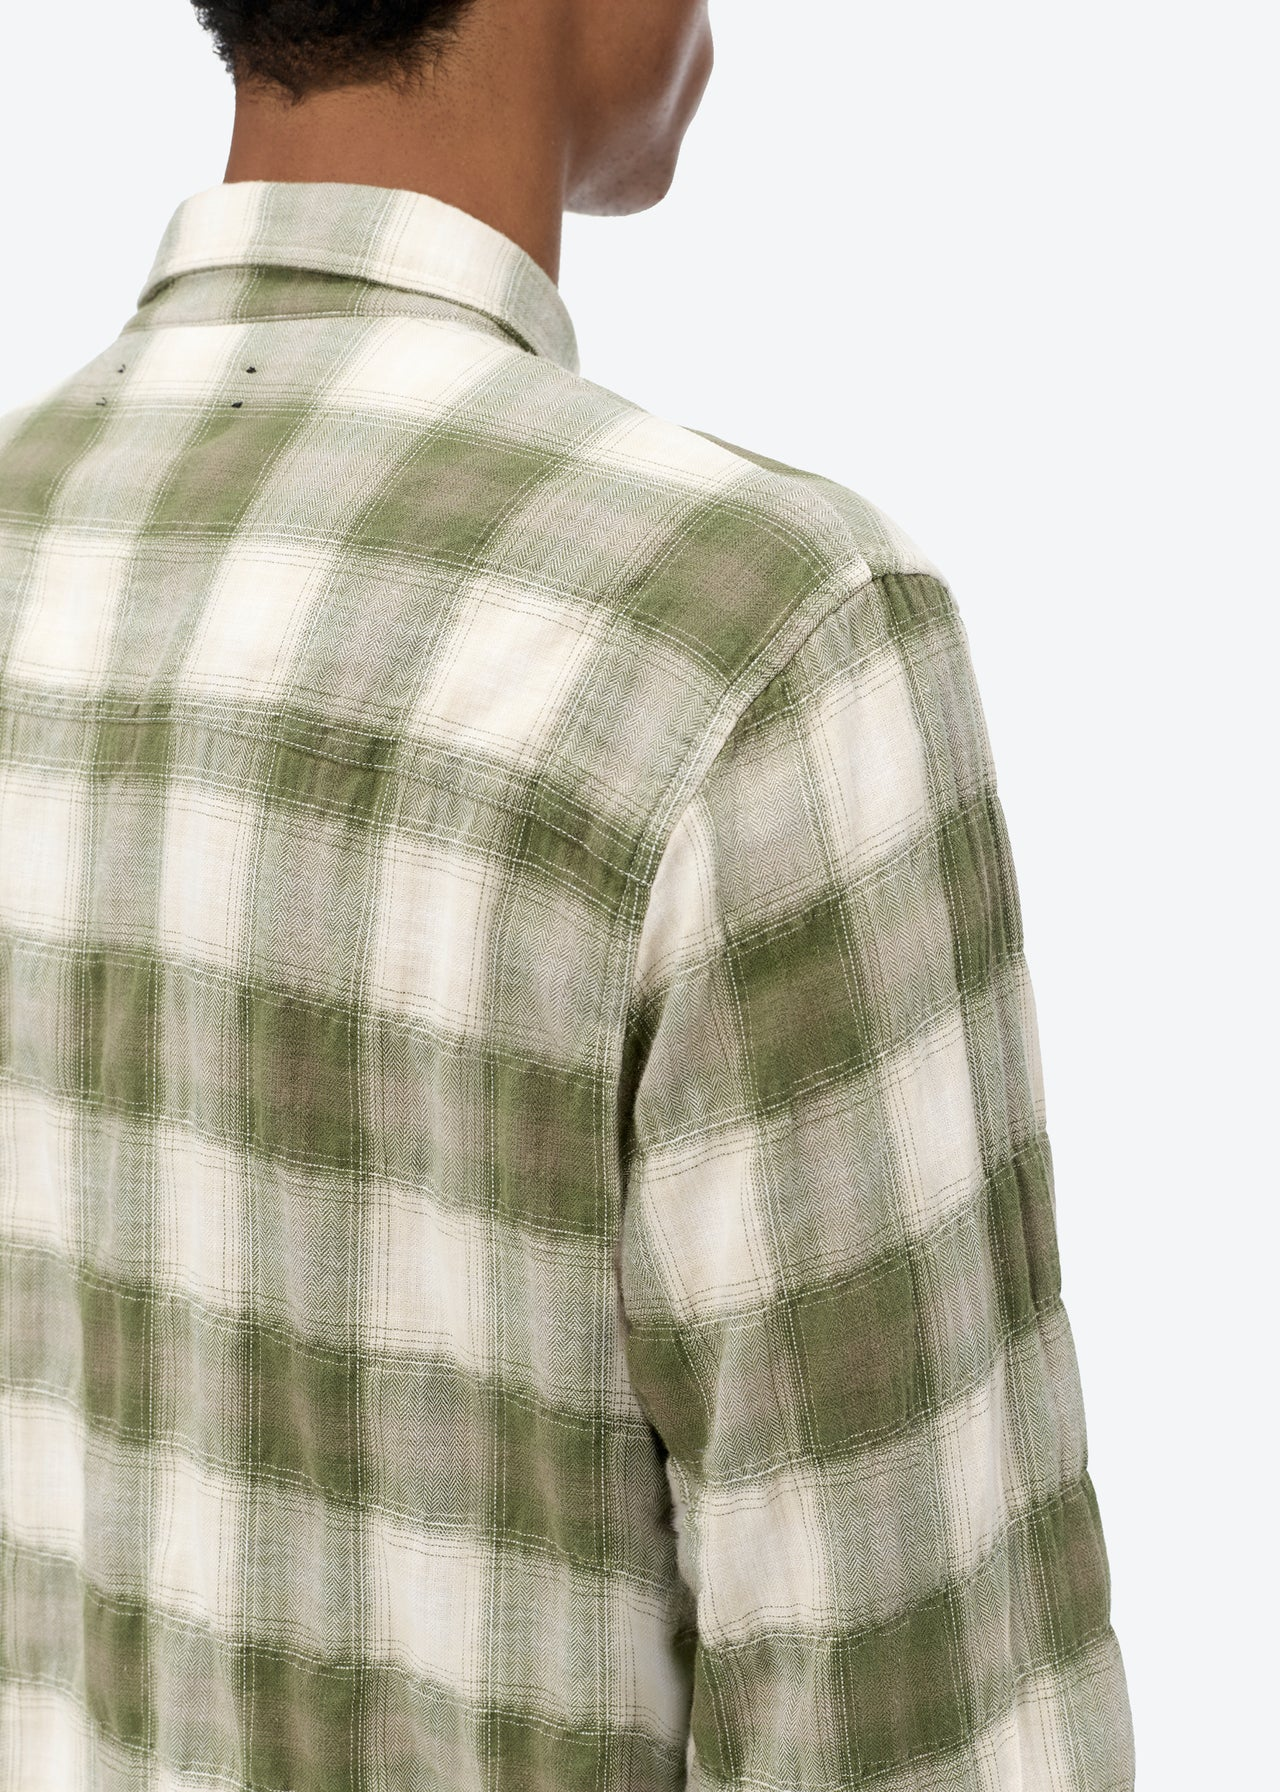 SUNFADED FLANNEL - MILITARY GREEN